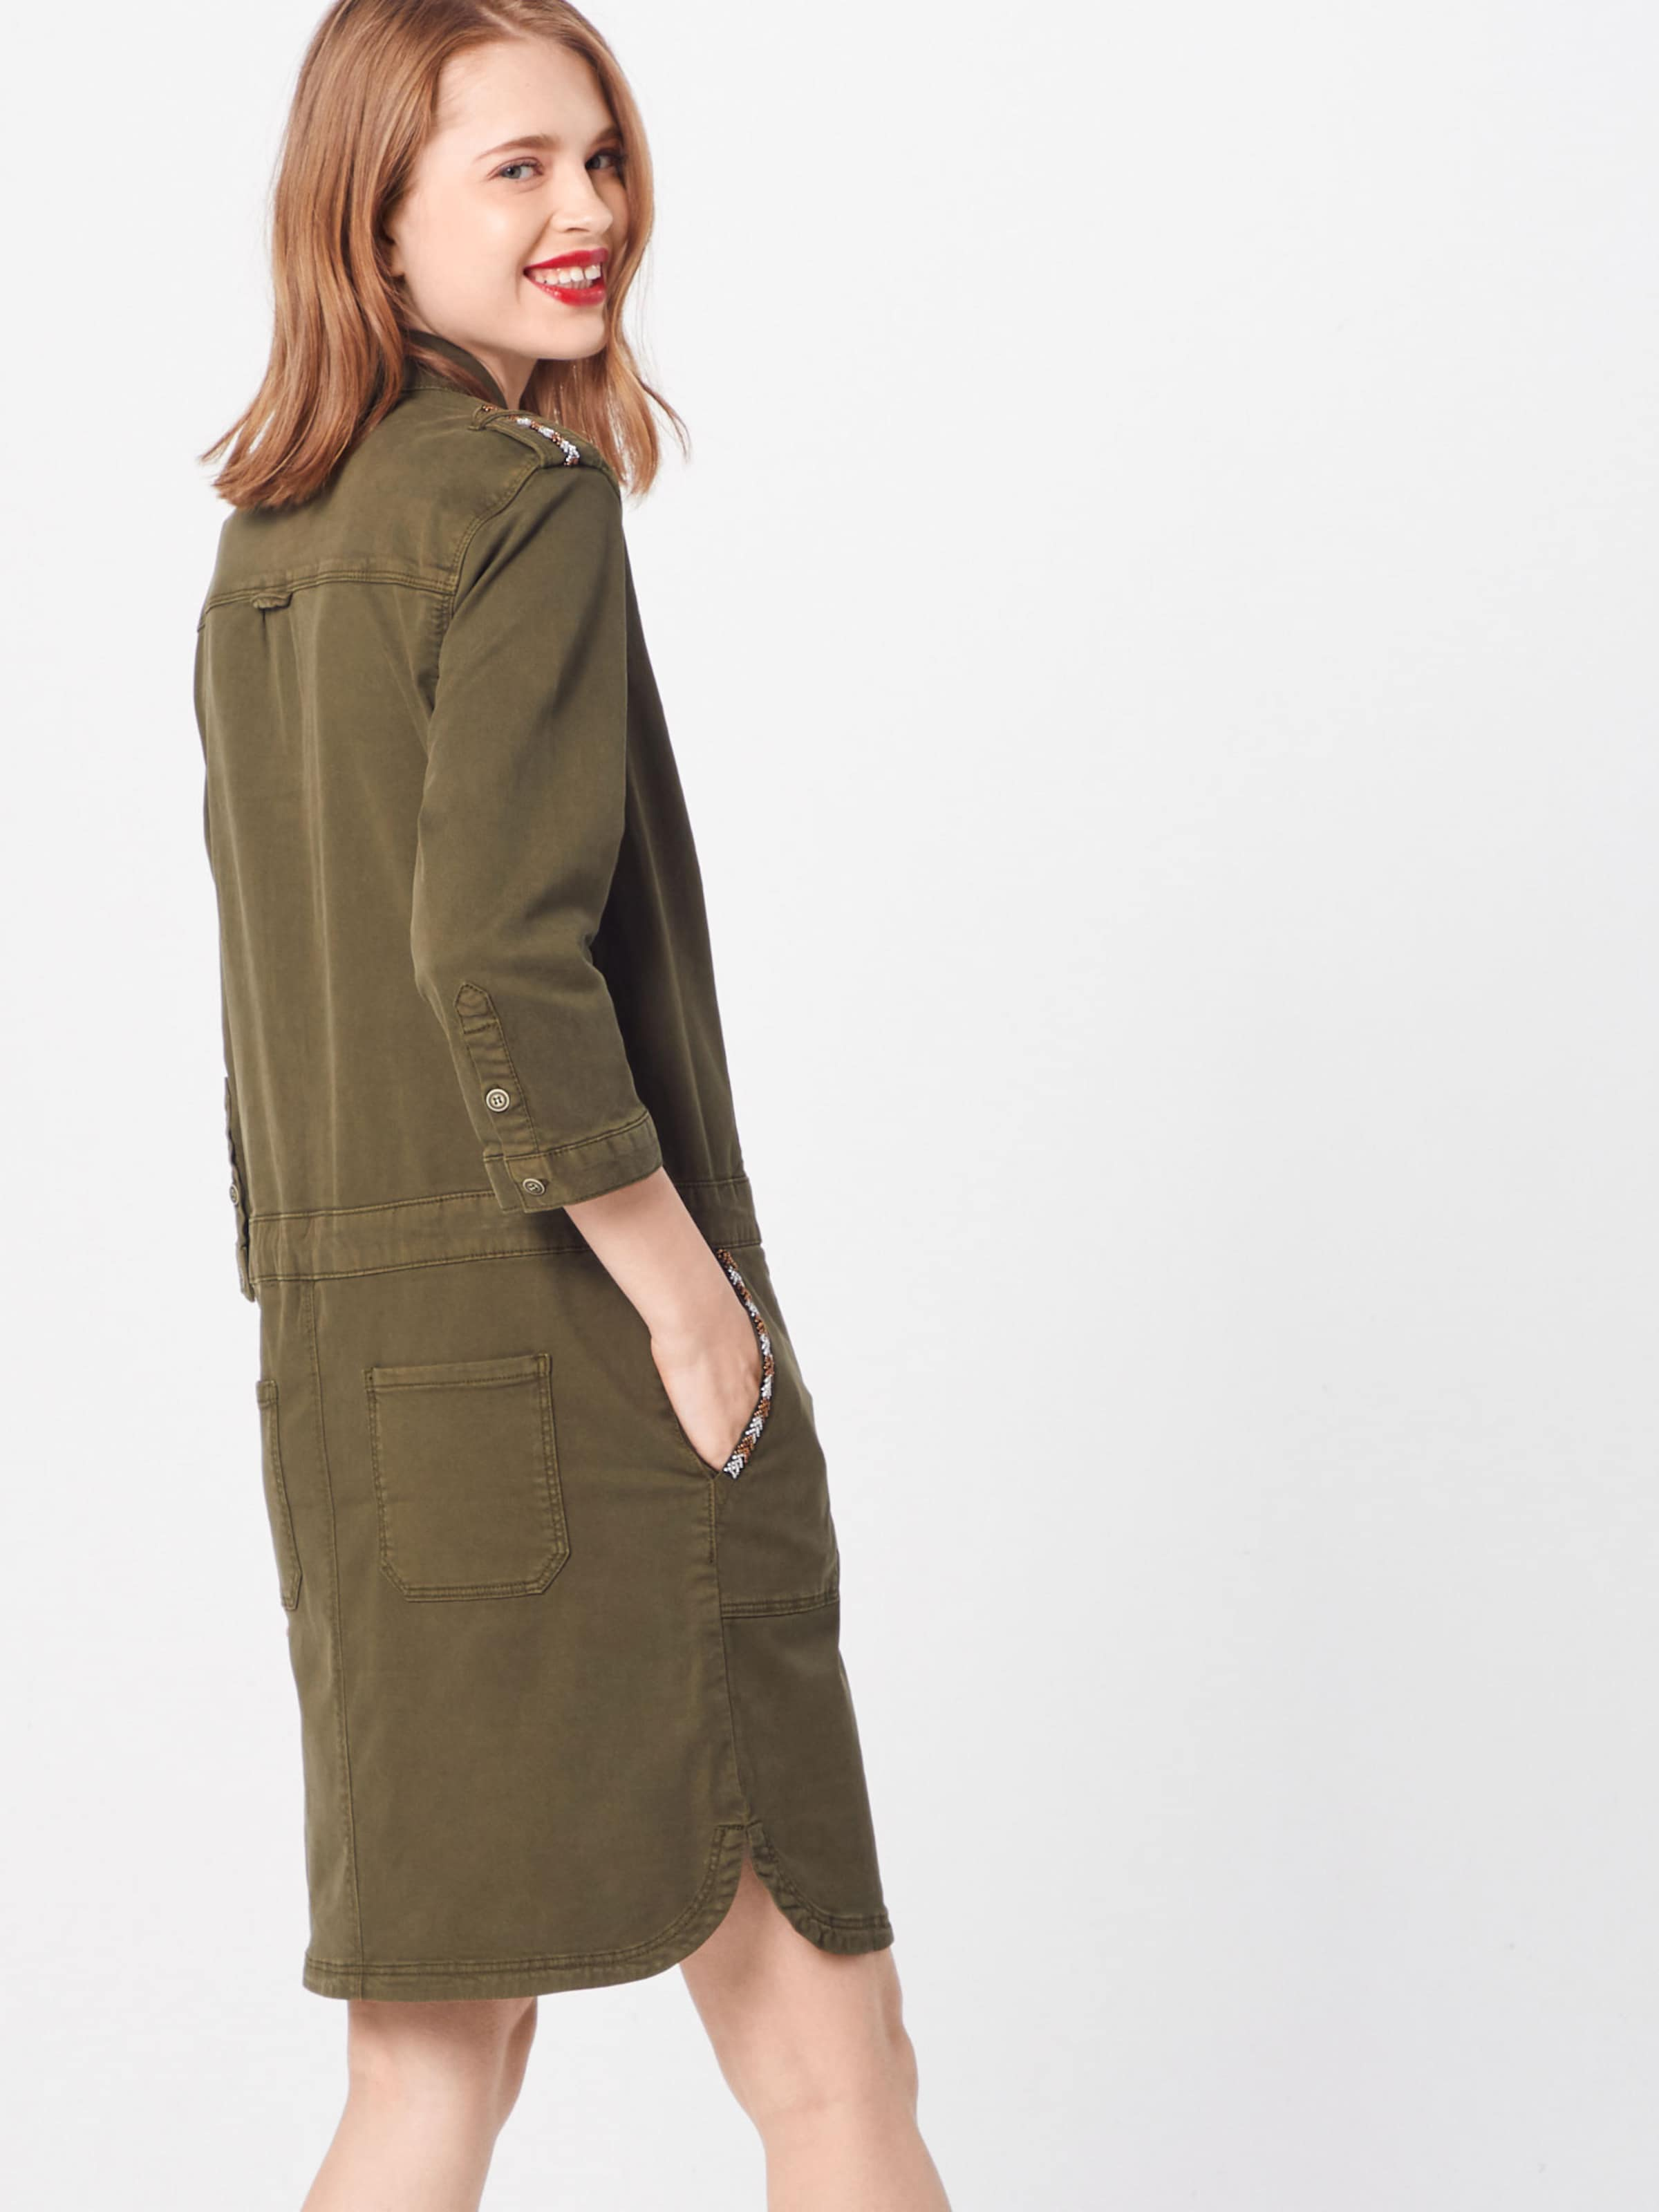 S In Red Label Khaki oliver Kleid j3qAR45L